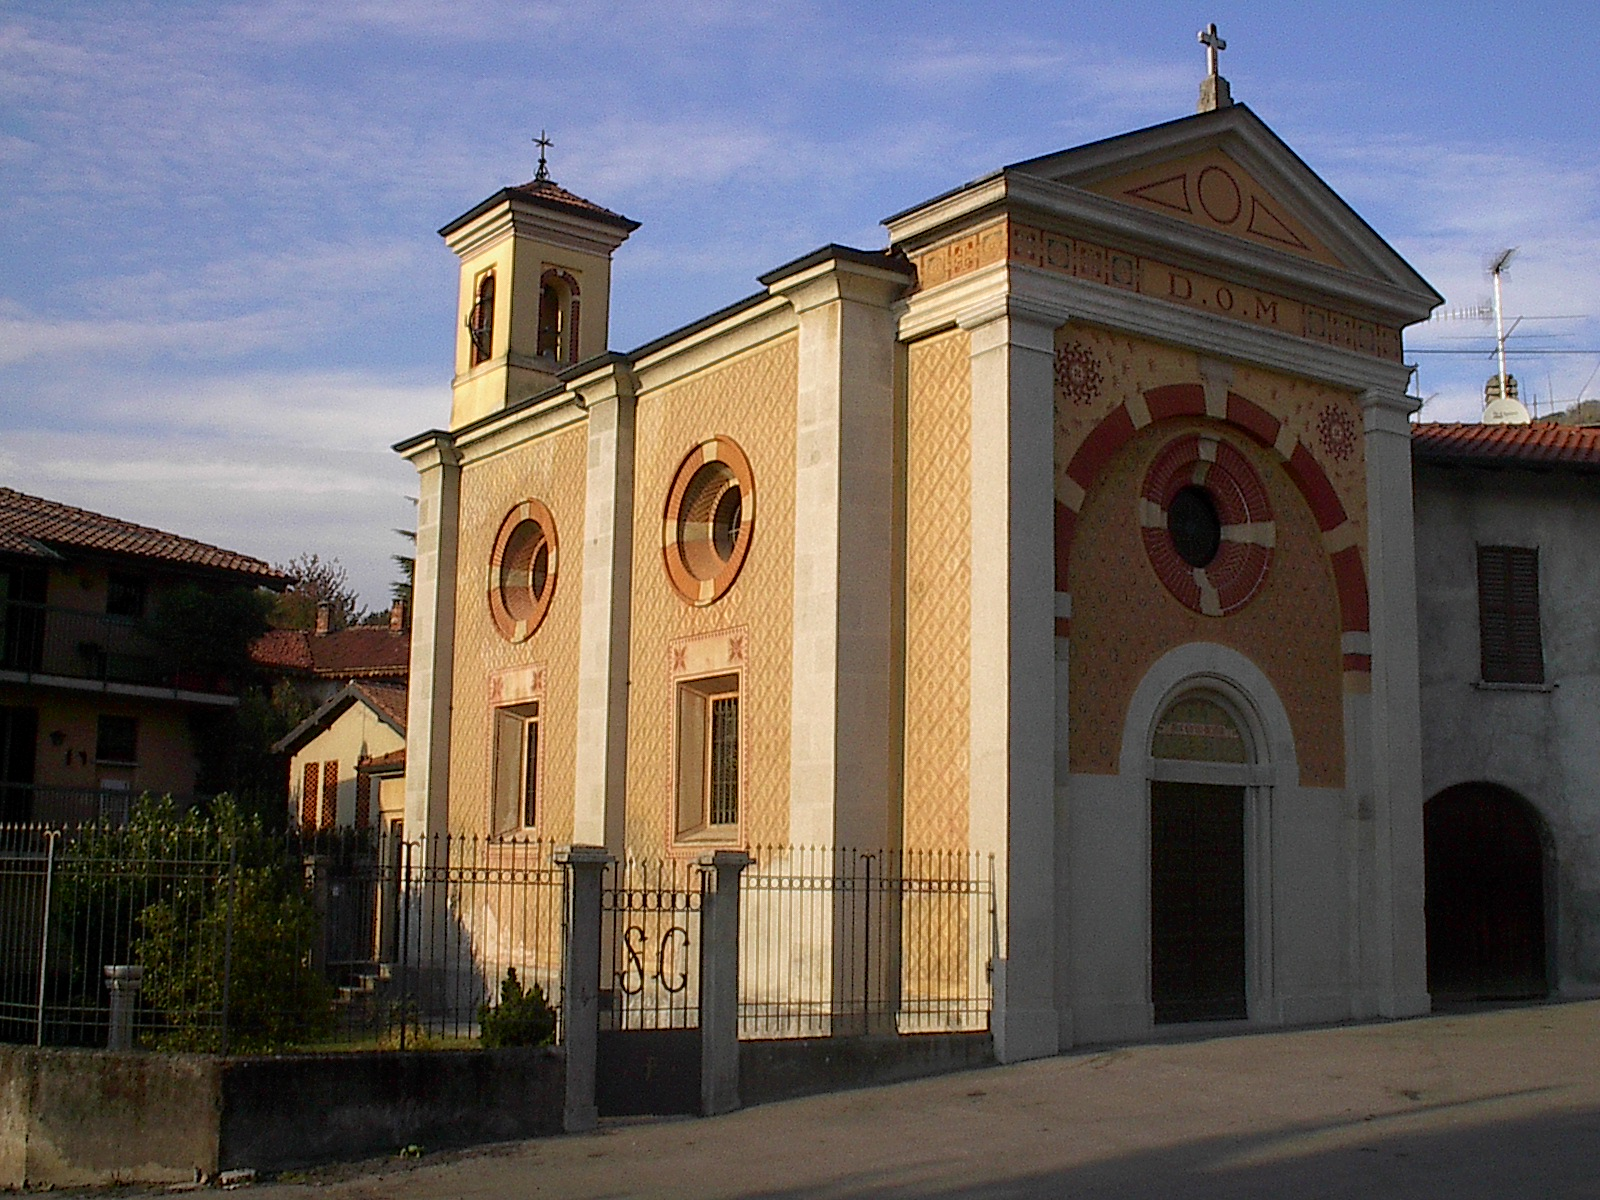 https://upload.wikimedia.org/wikipedia/commons/f/f7/Chiesa_di_San_Carlo_in_Gavirate.JPG